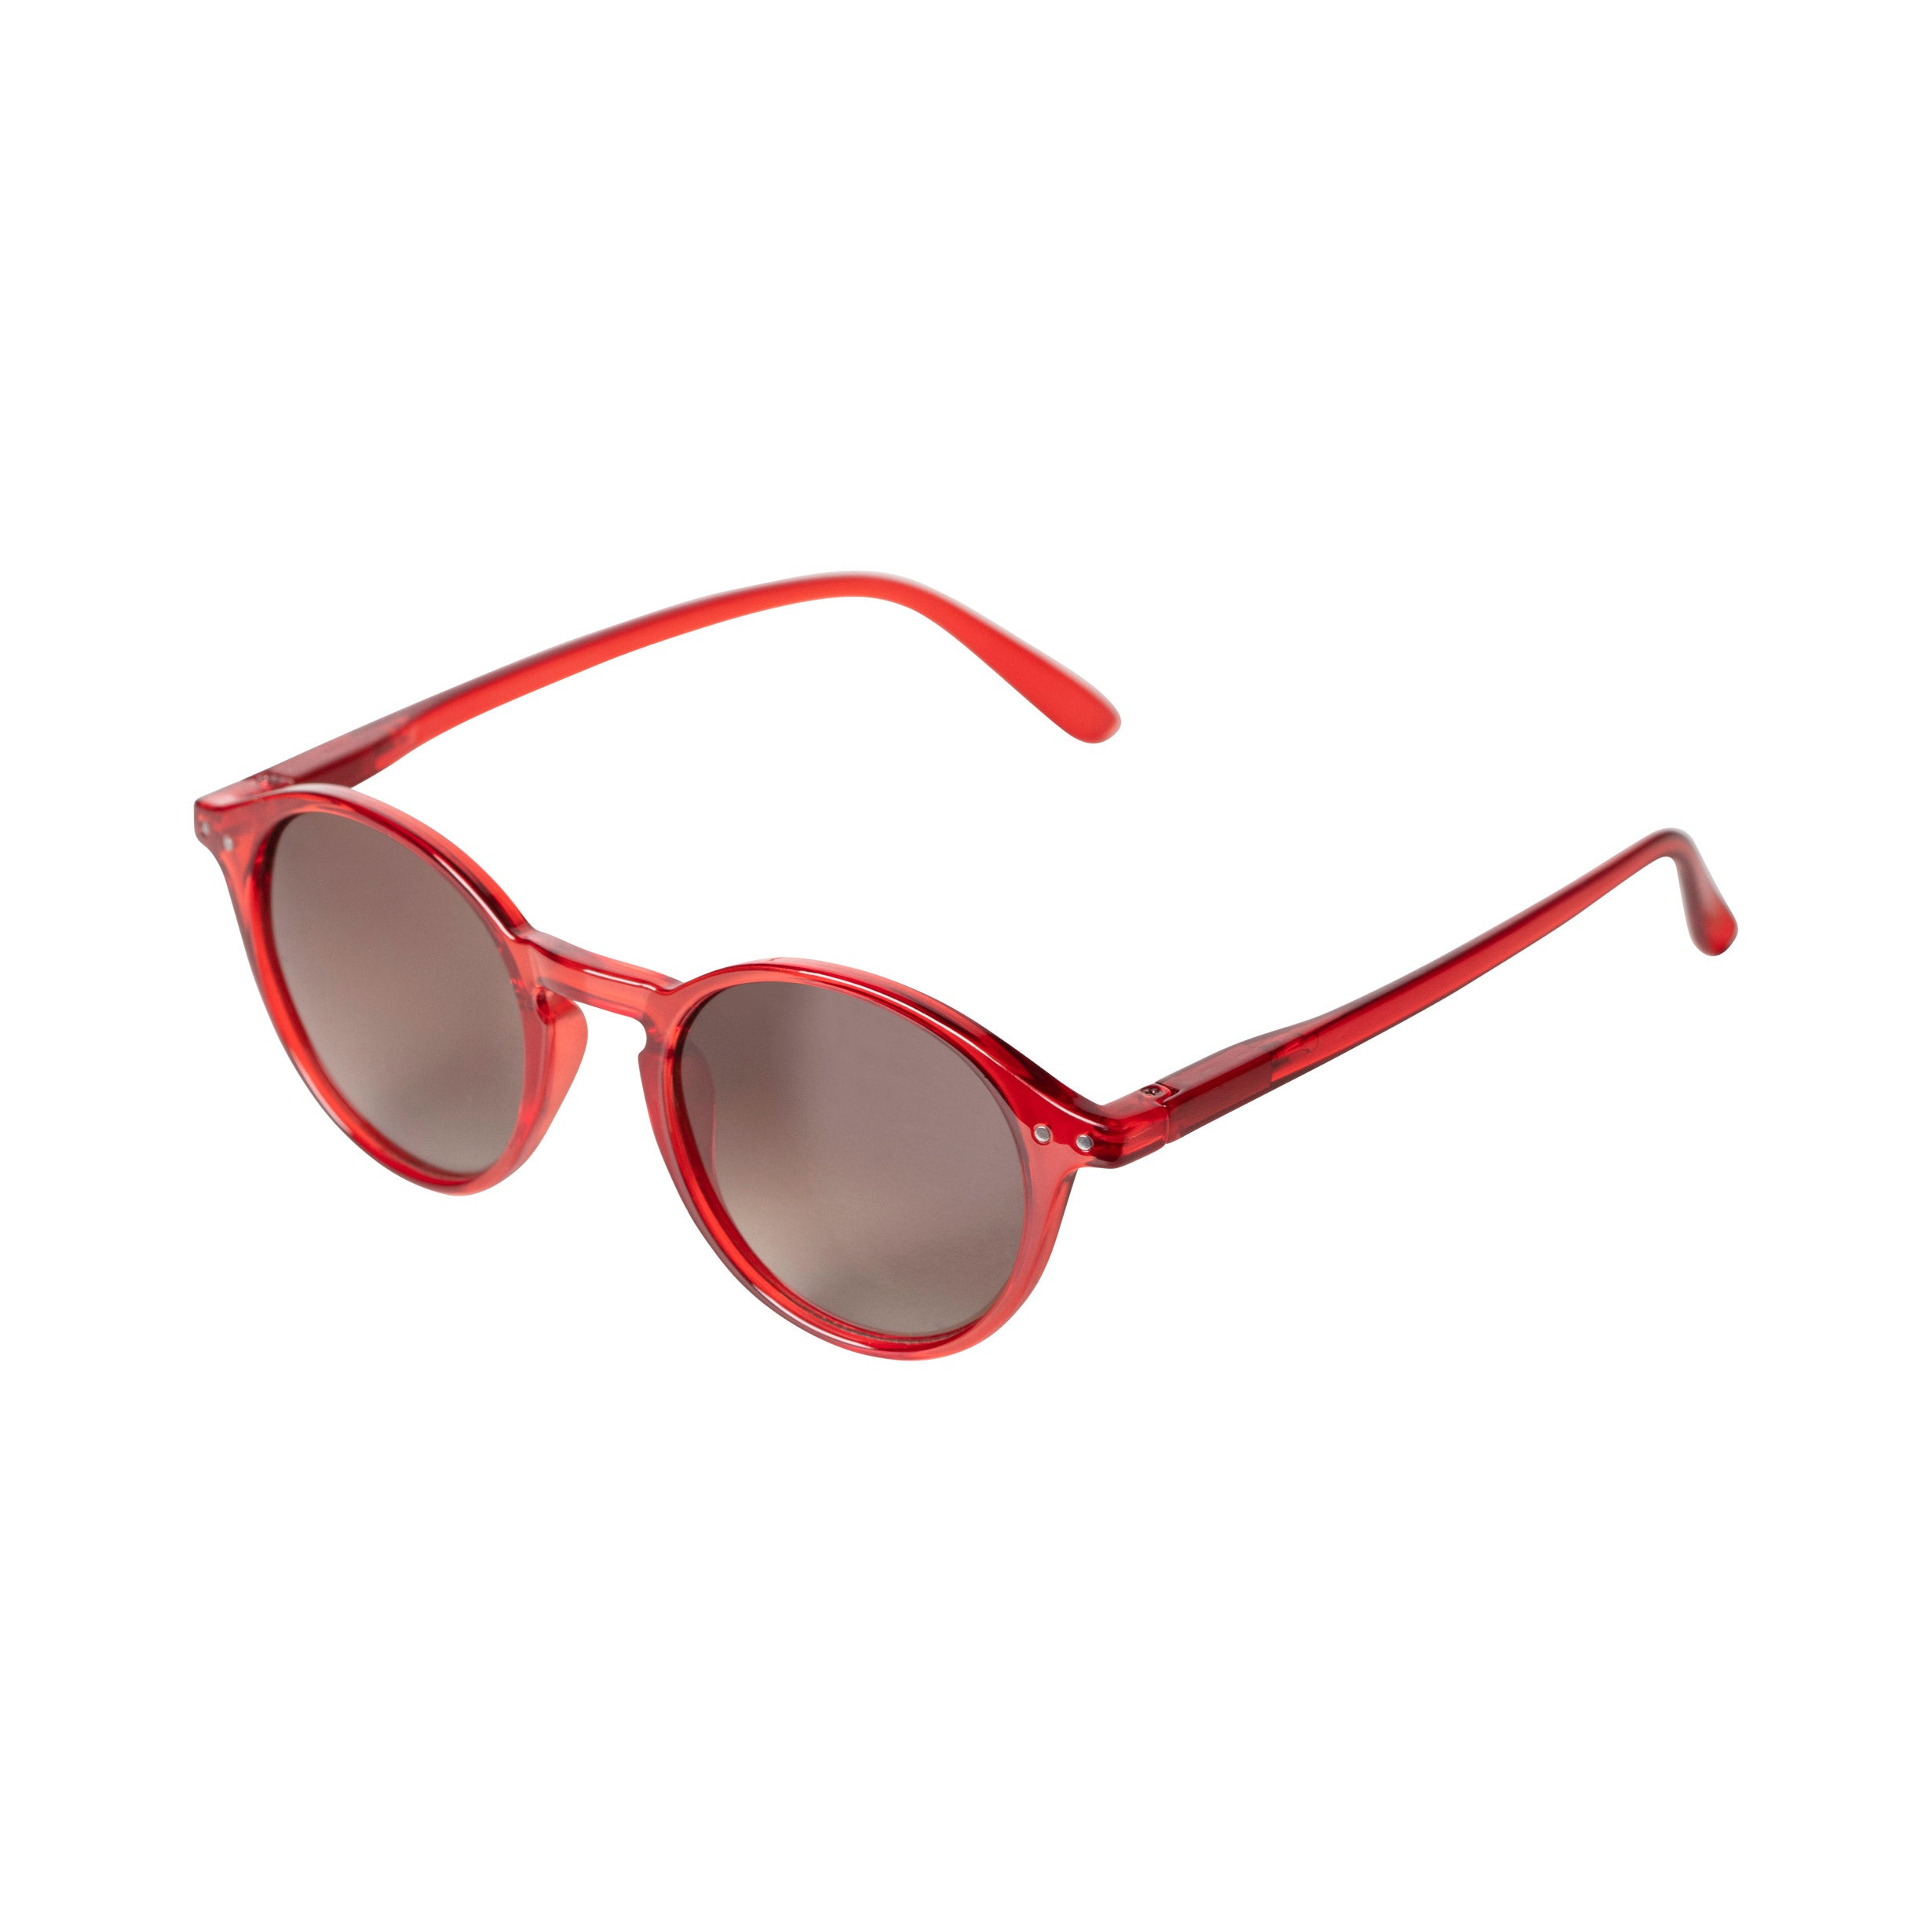 Sunglasses : Roxanne : Red